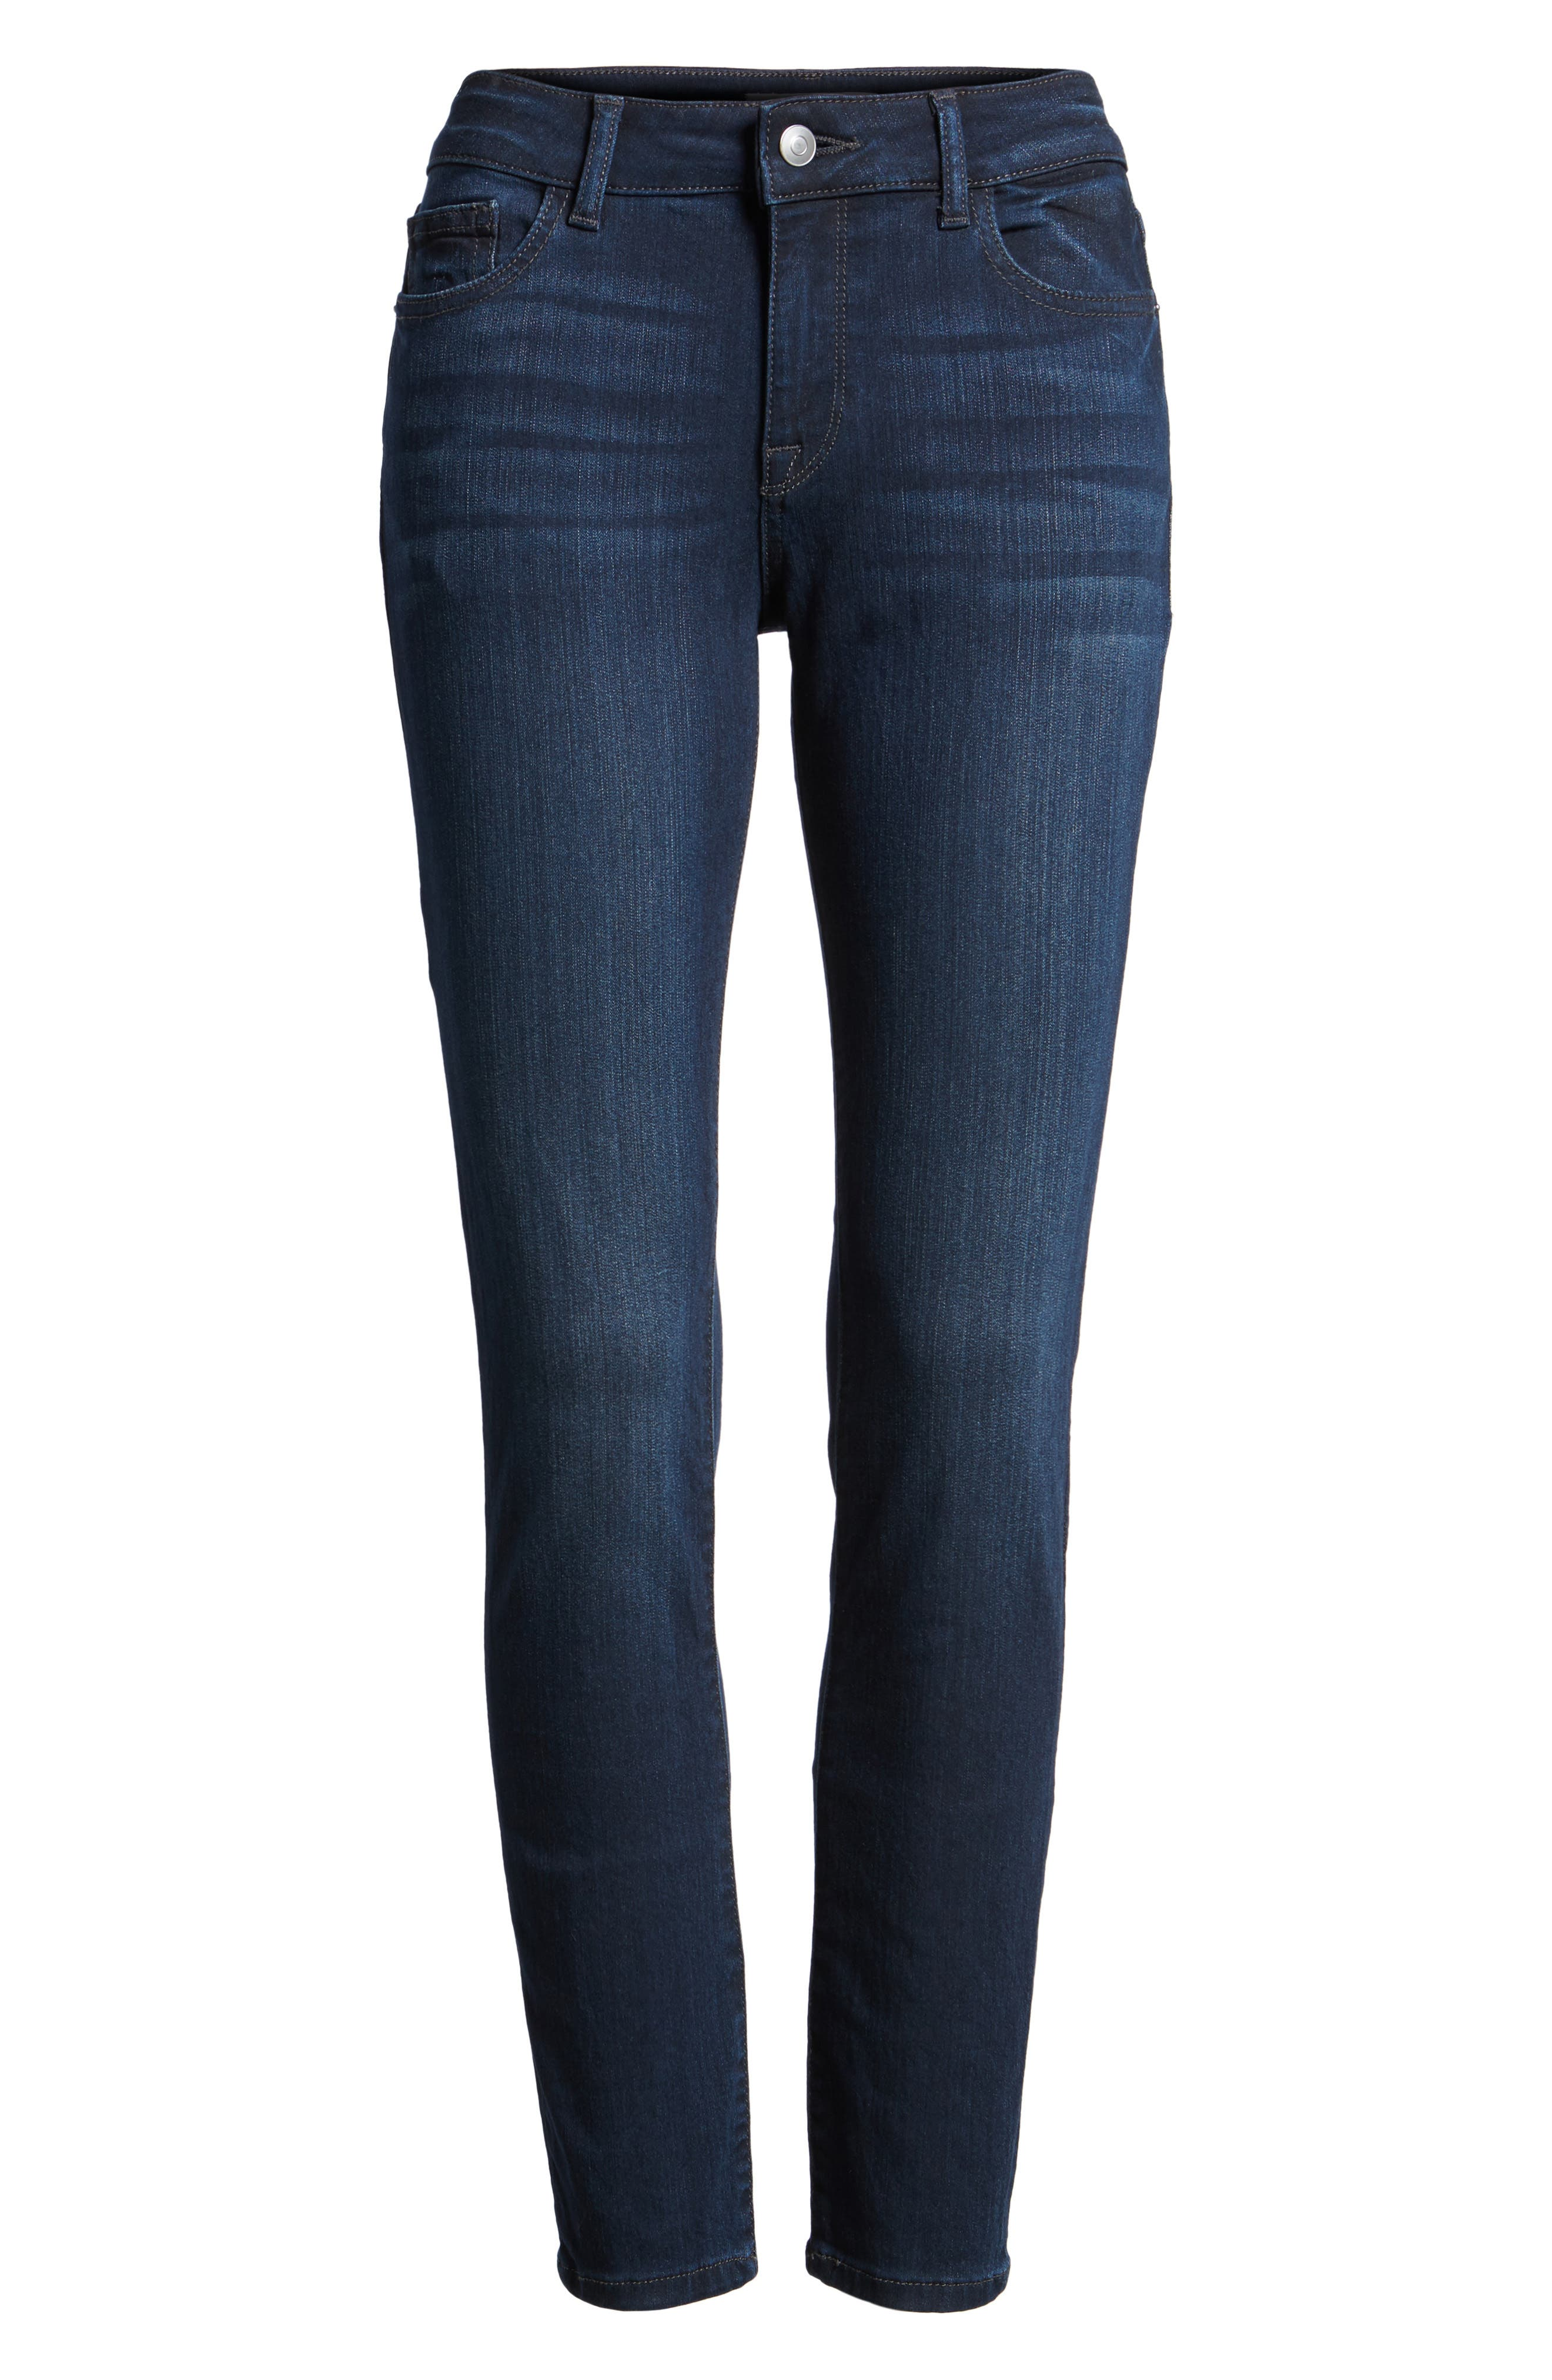 Margaux Instasculpt Ankle Skinny Jeans,                             Alternate thumbnail 7, color,                             405